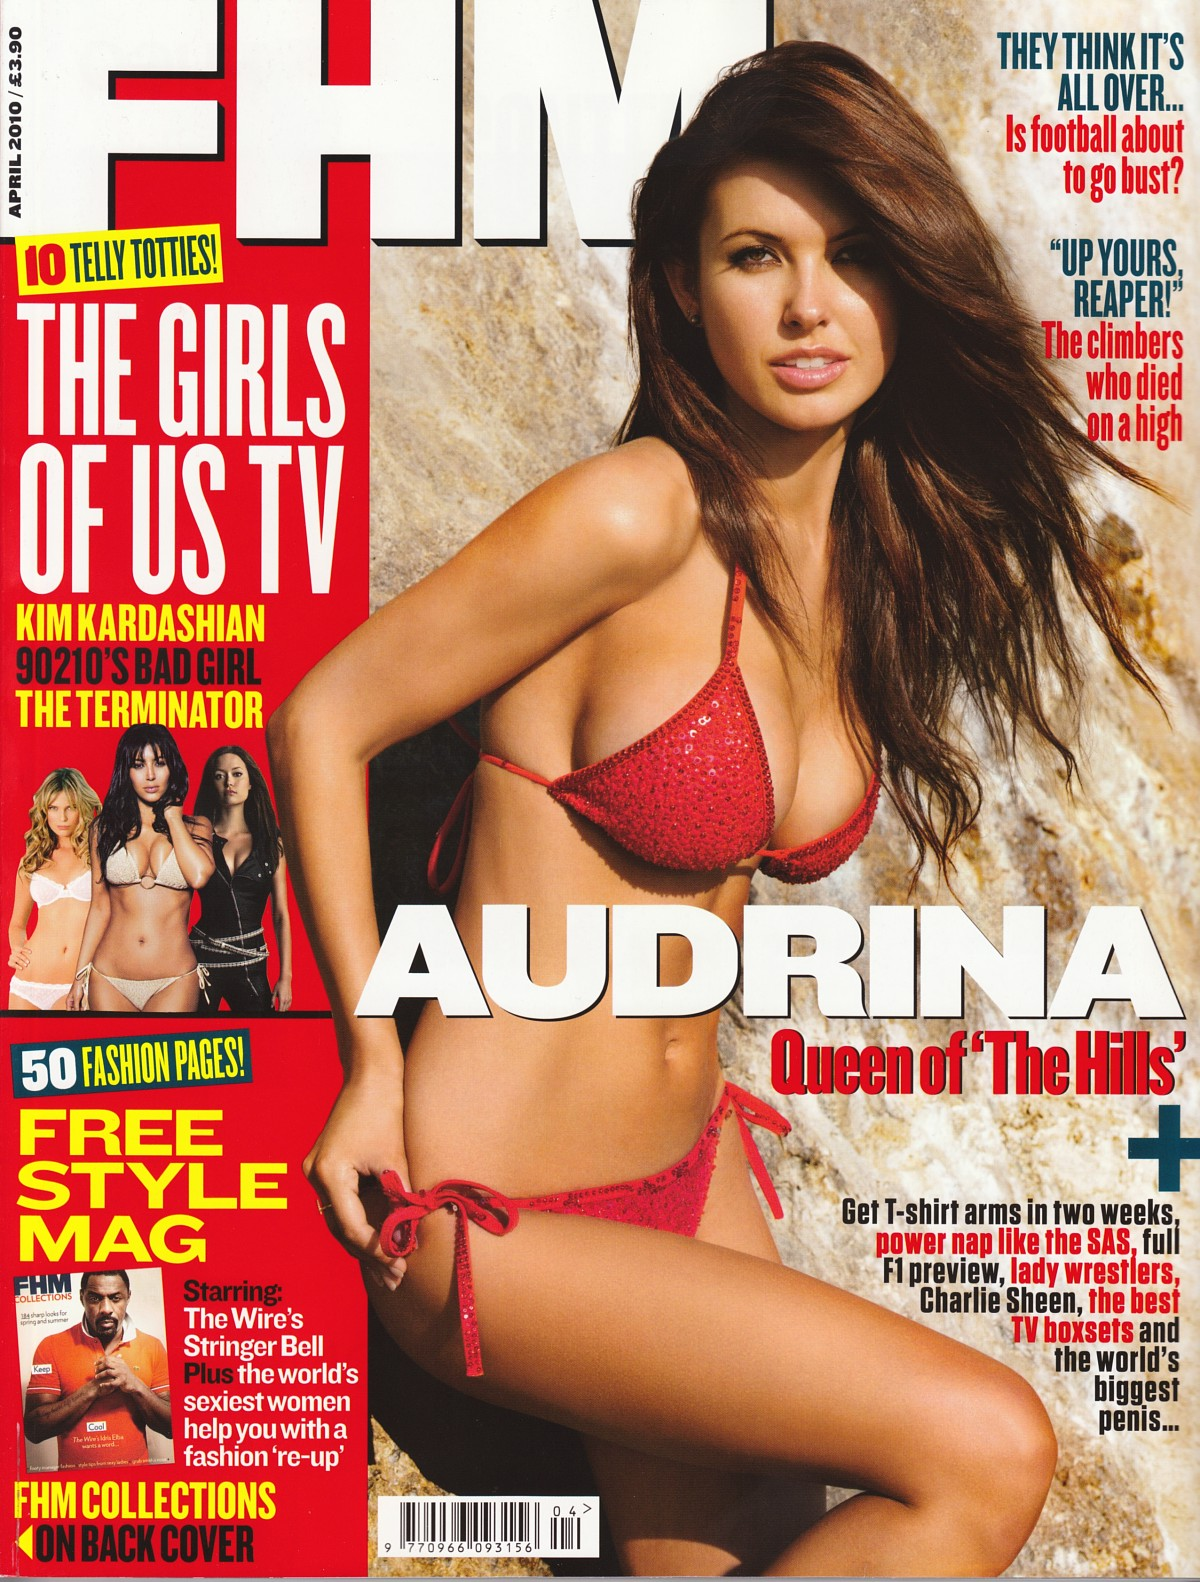 http://11even.files.wordpress.com/2010/03/audrina-patridge-bikini-fhm-01.jpg